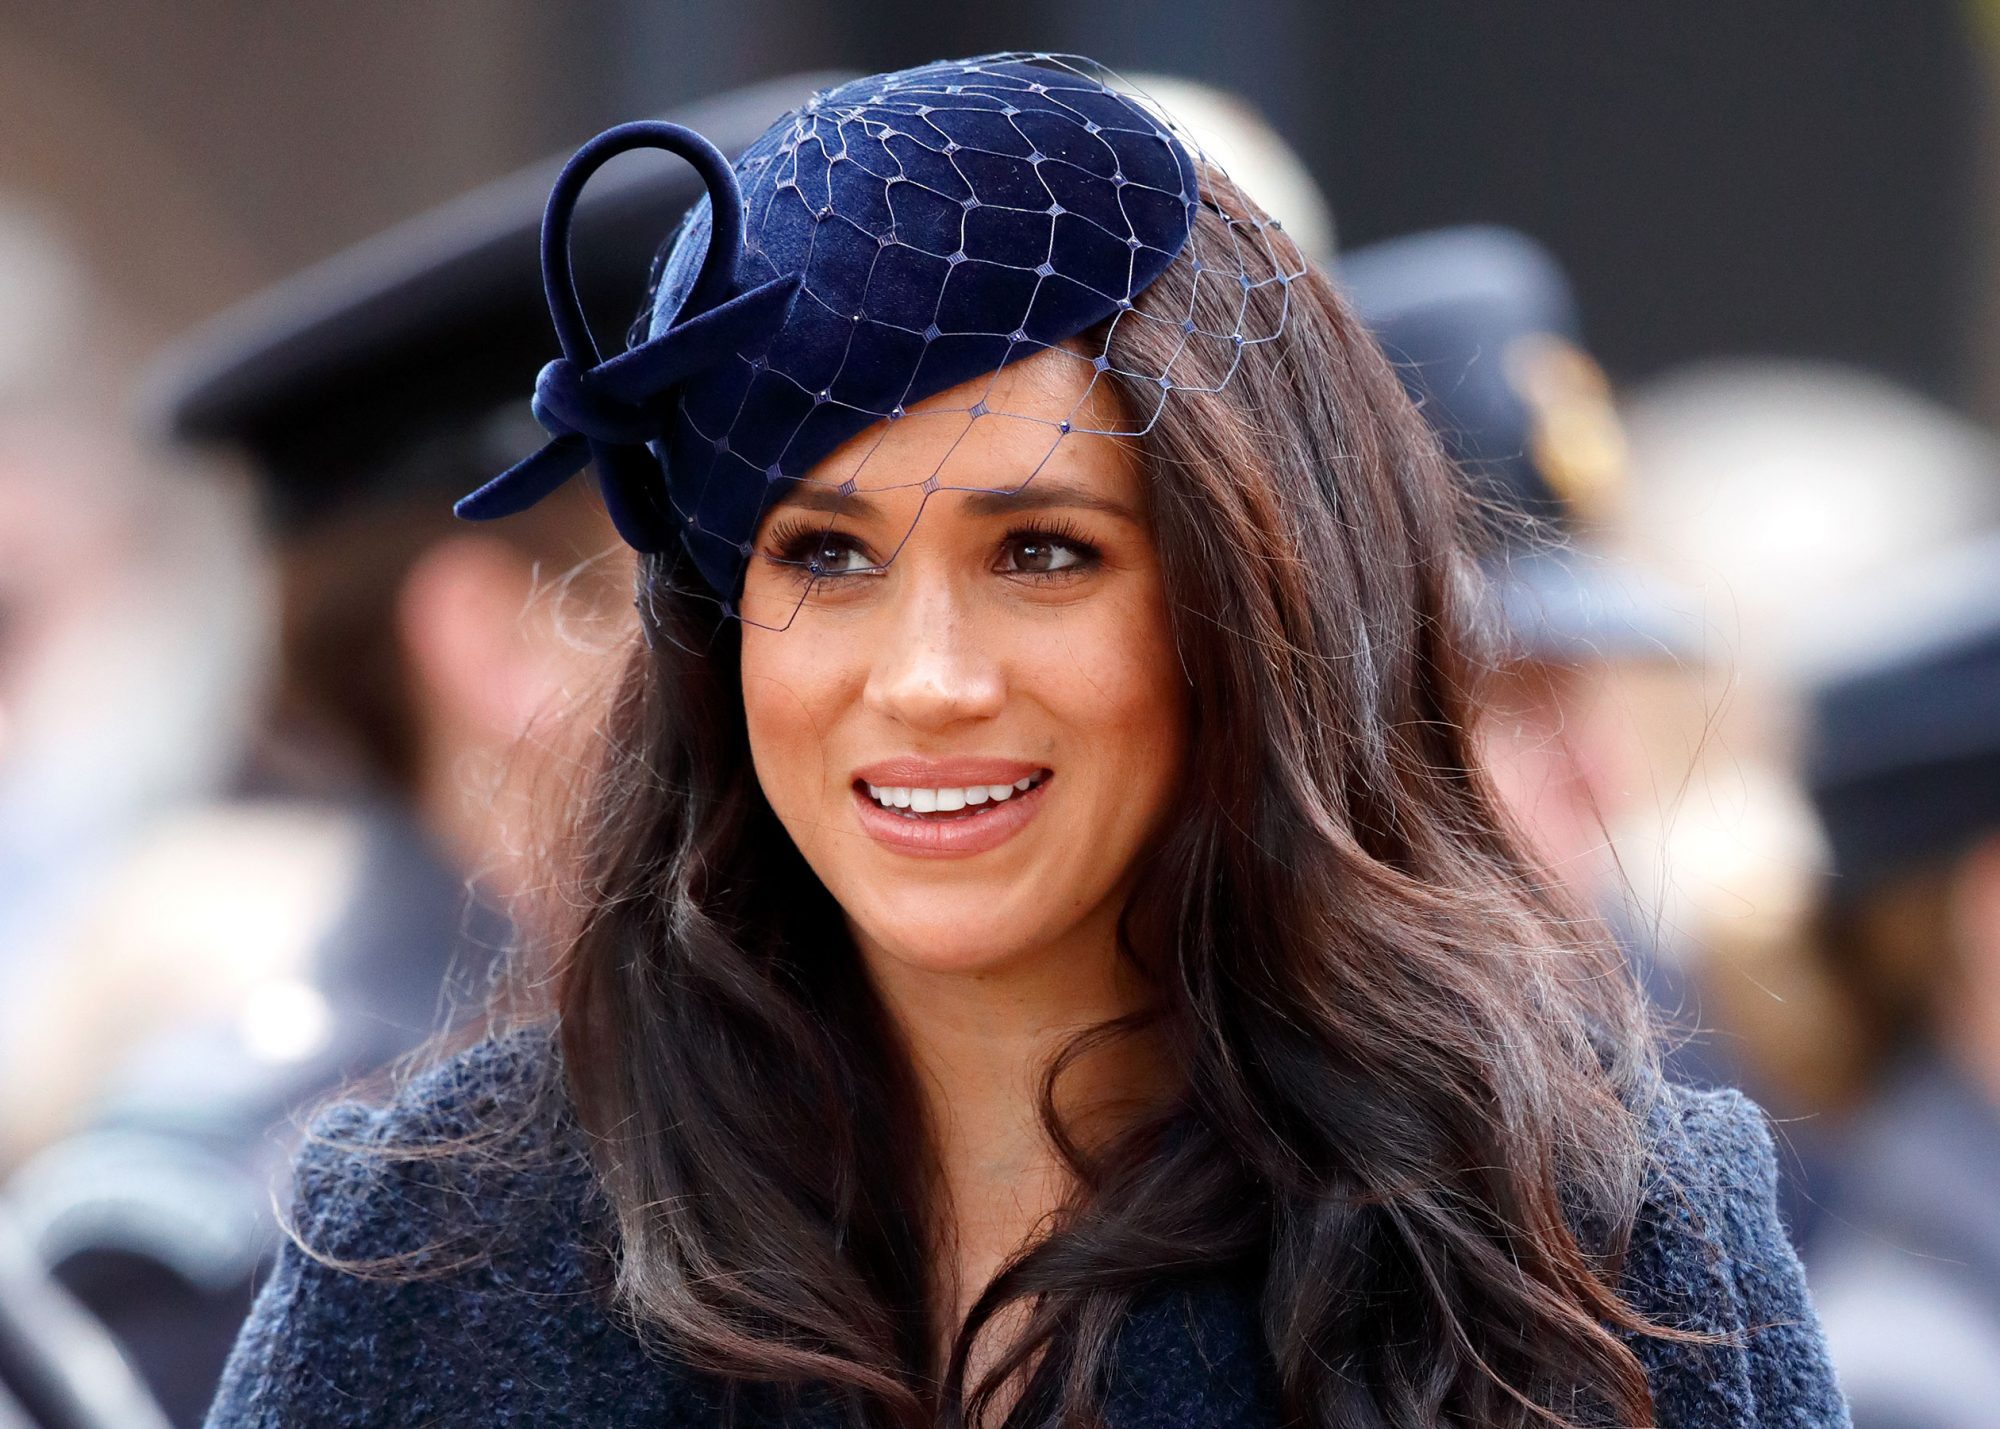 Best summer hair colors 2020: Meghan Markle